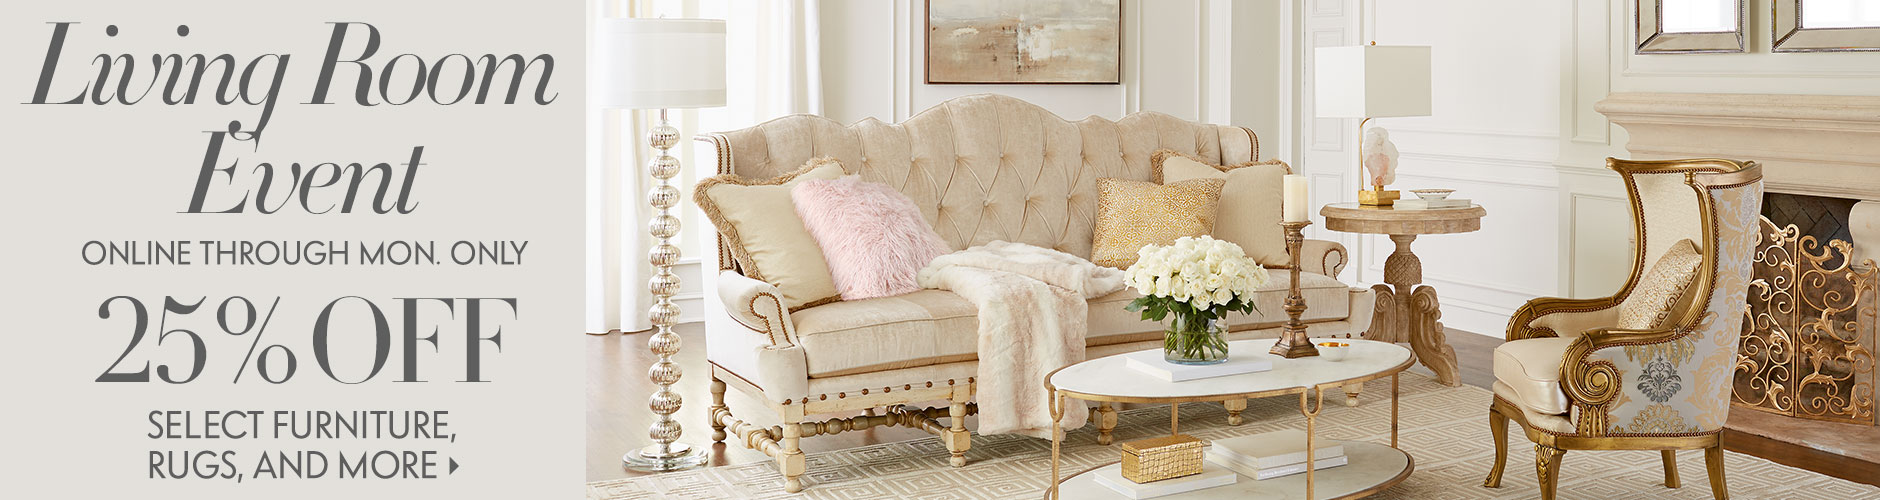 25% off Living Room Event